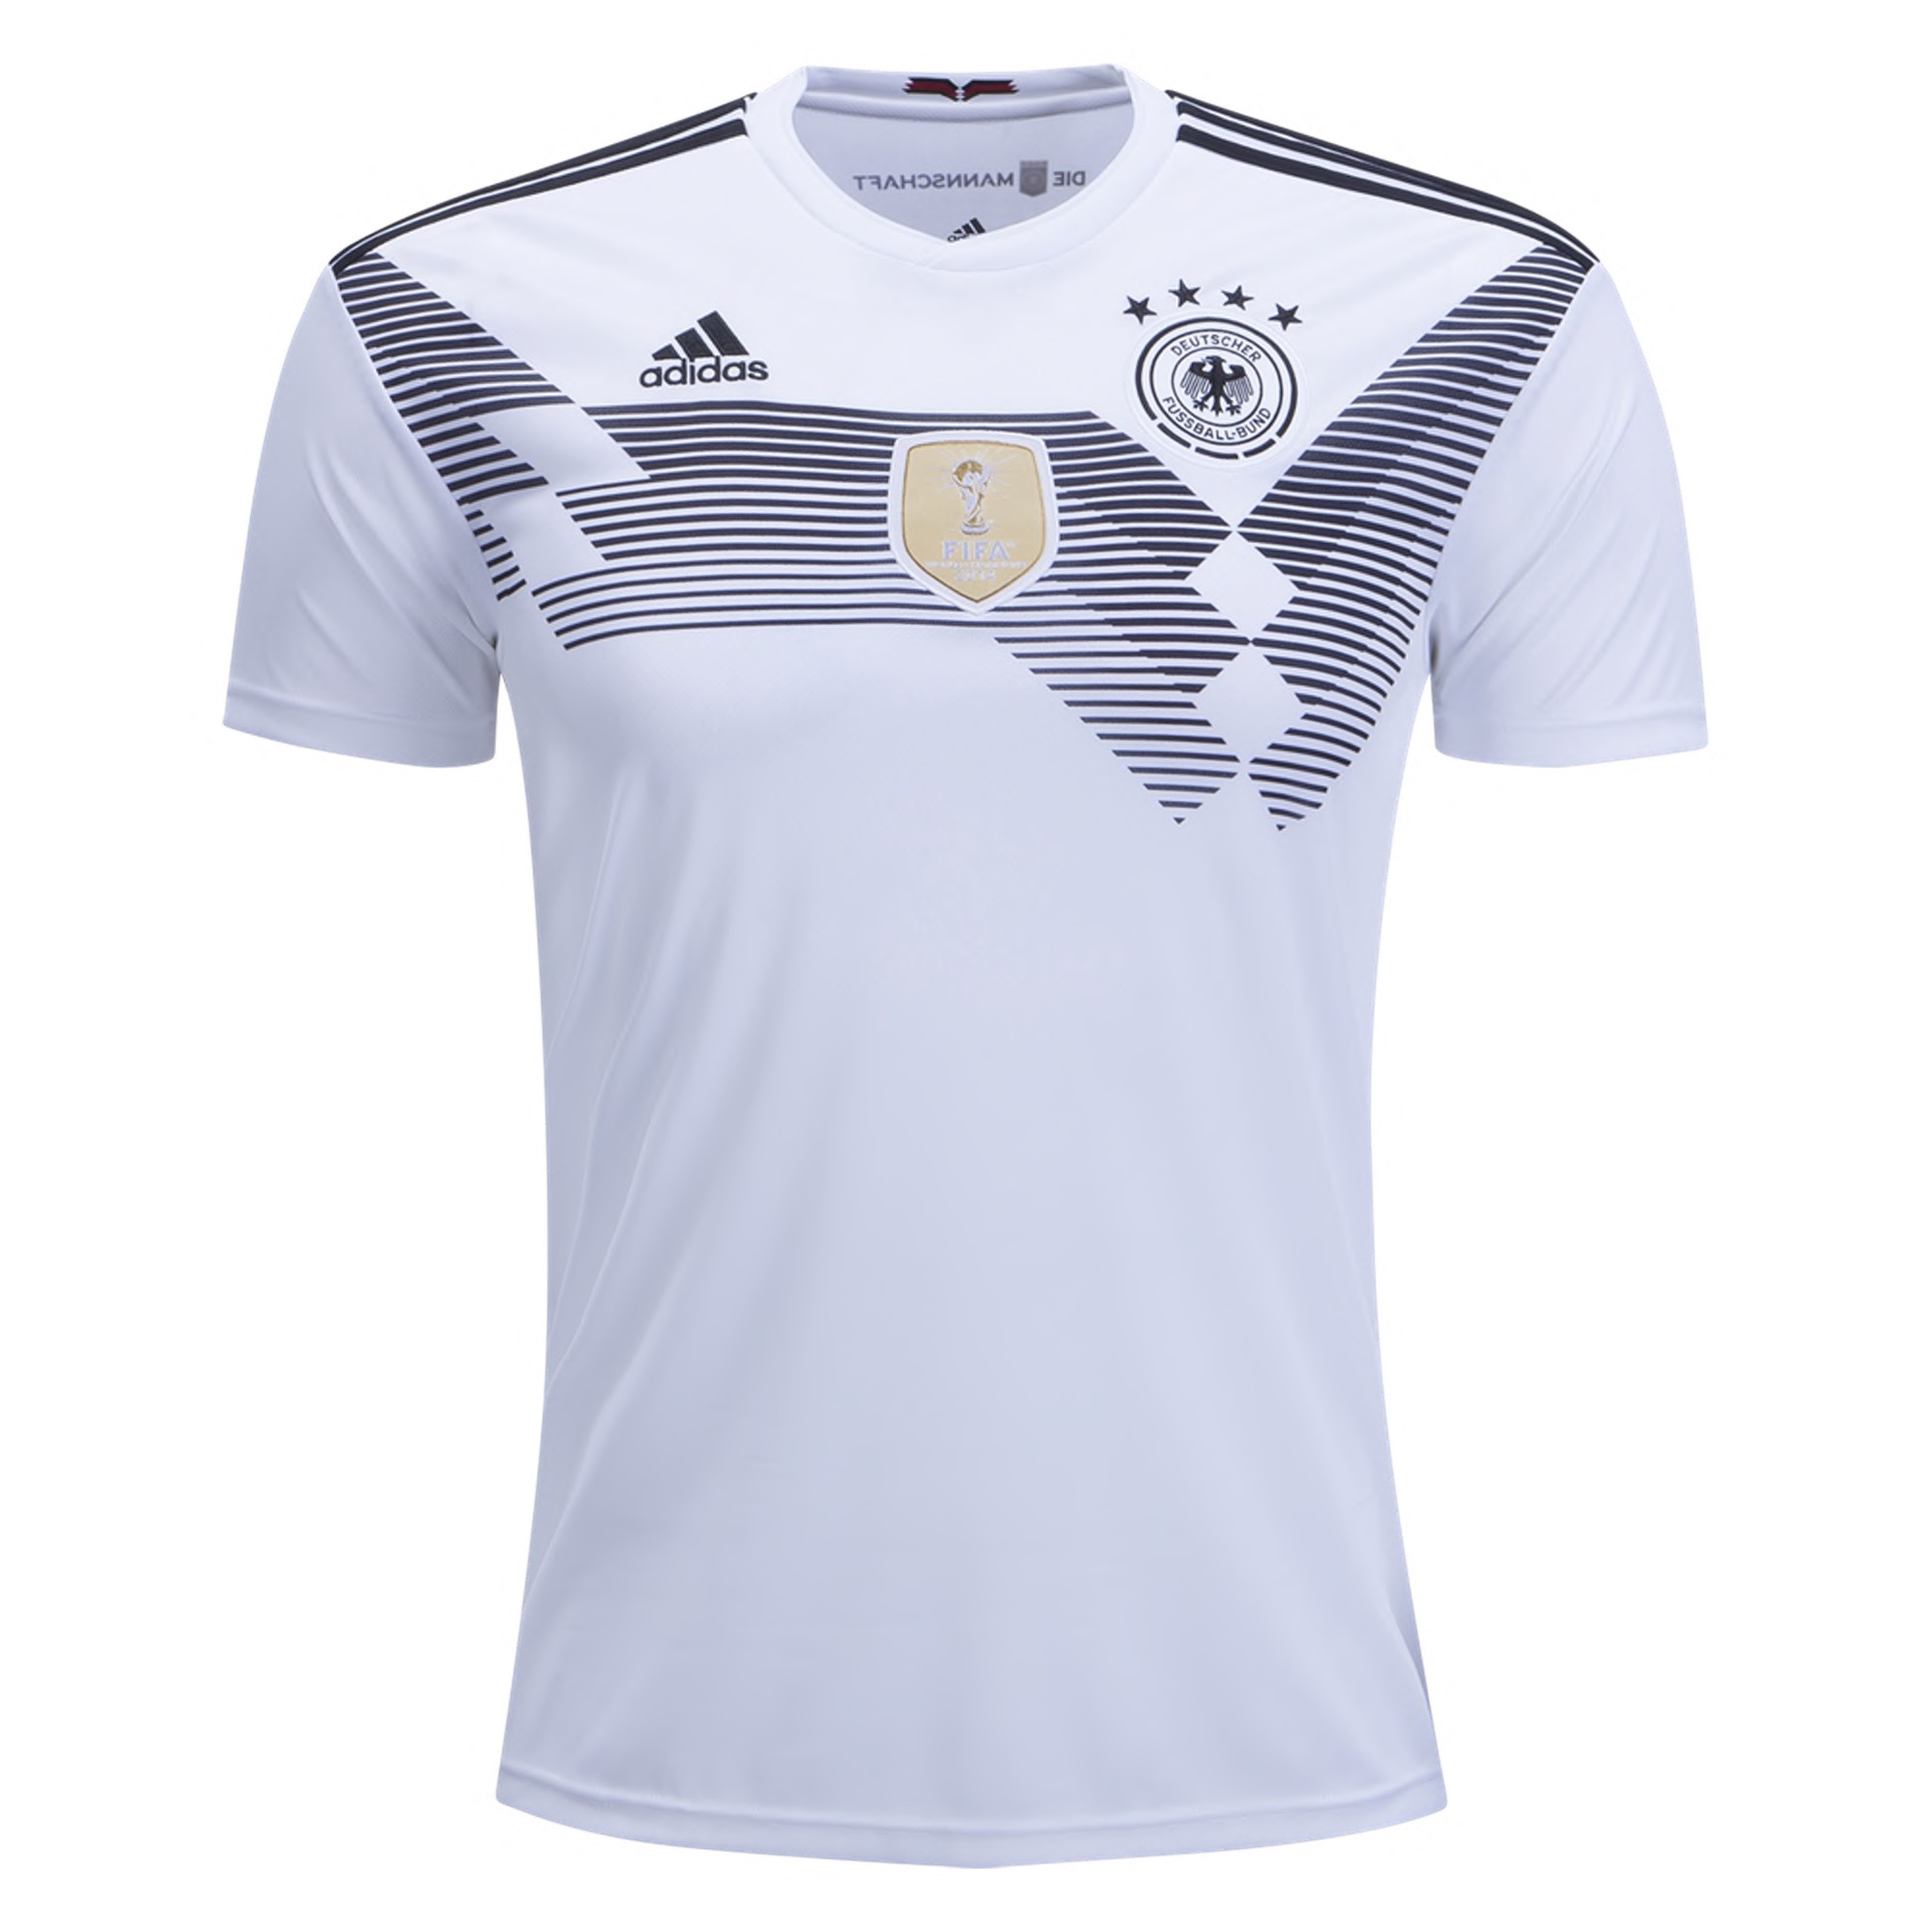 adidas Germany Home Jersey 2018